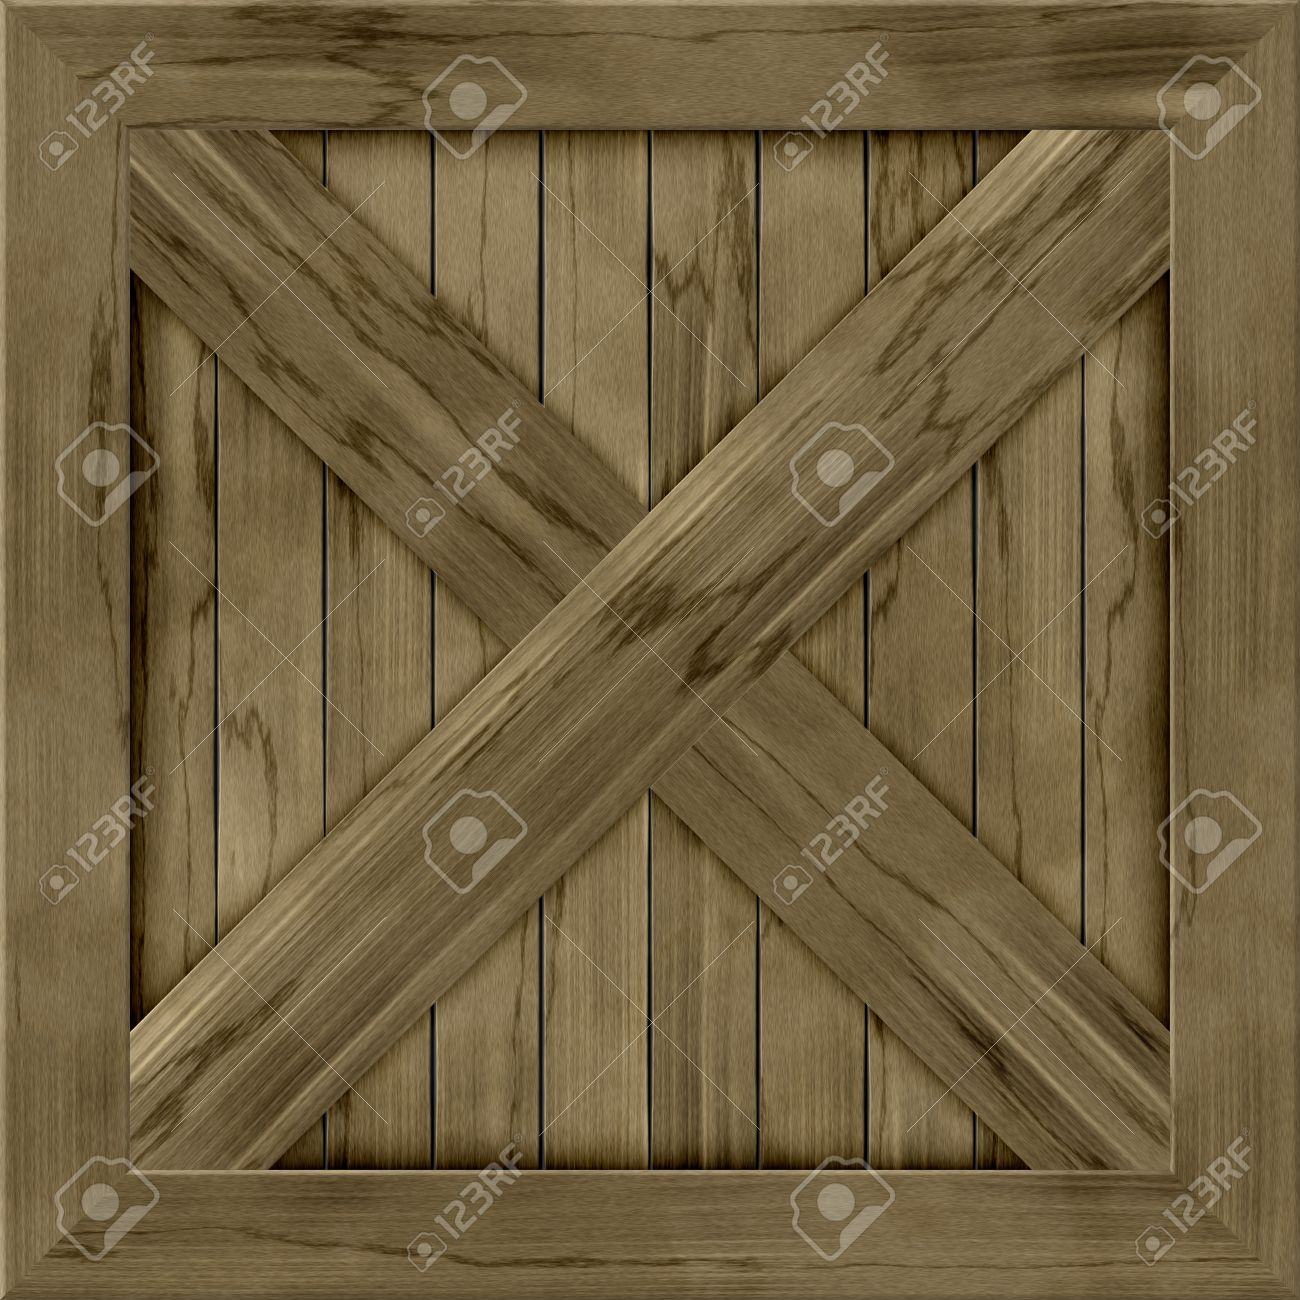 Wood Crate Generated Hires Texture Stock Photo Picture And Royalty